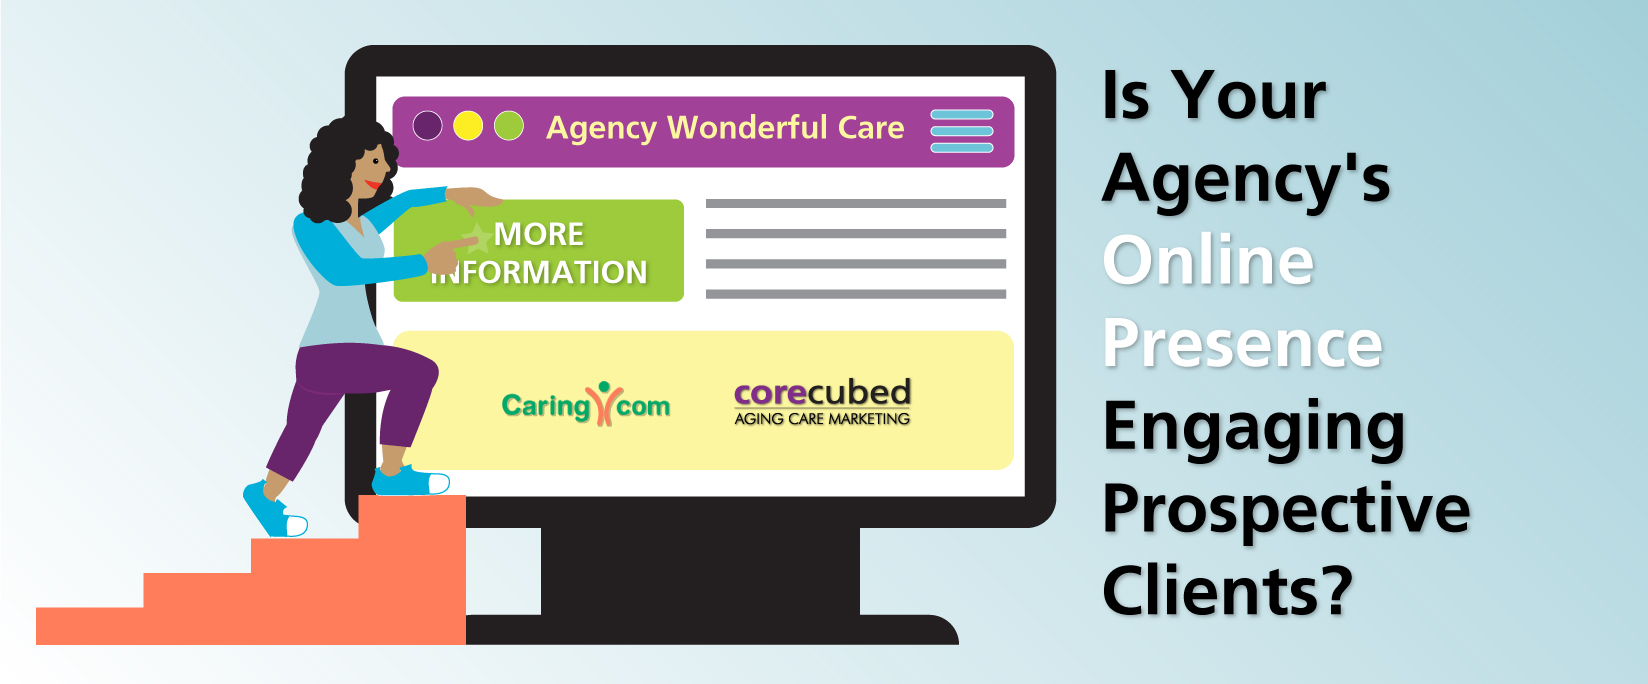 Is Your Agency's Online Presence Engaging Prospective Clients?